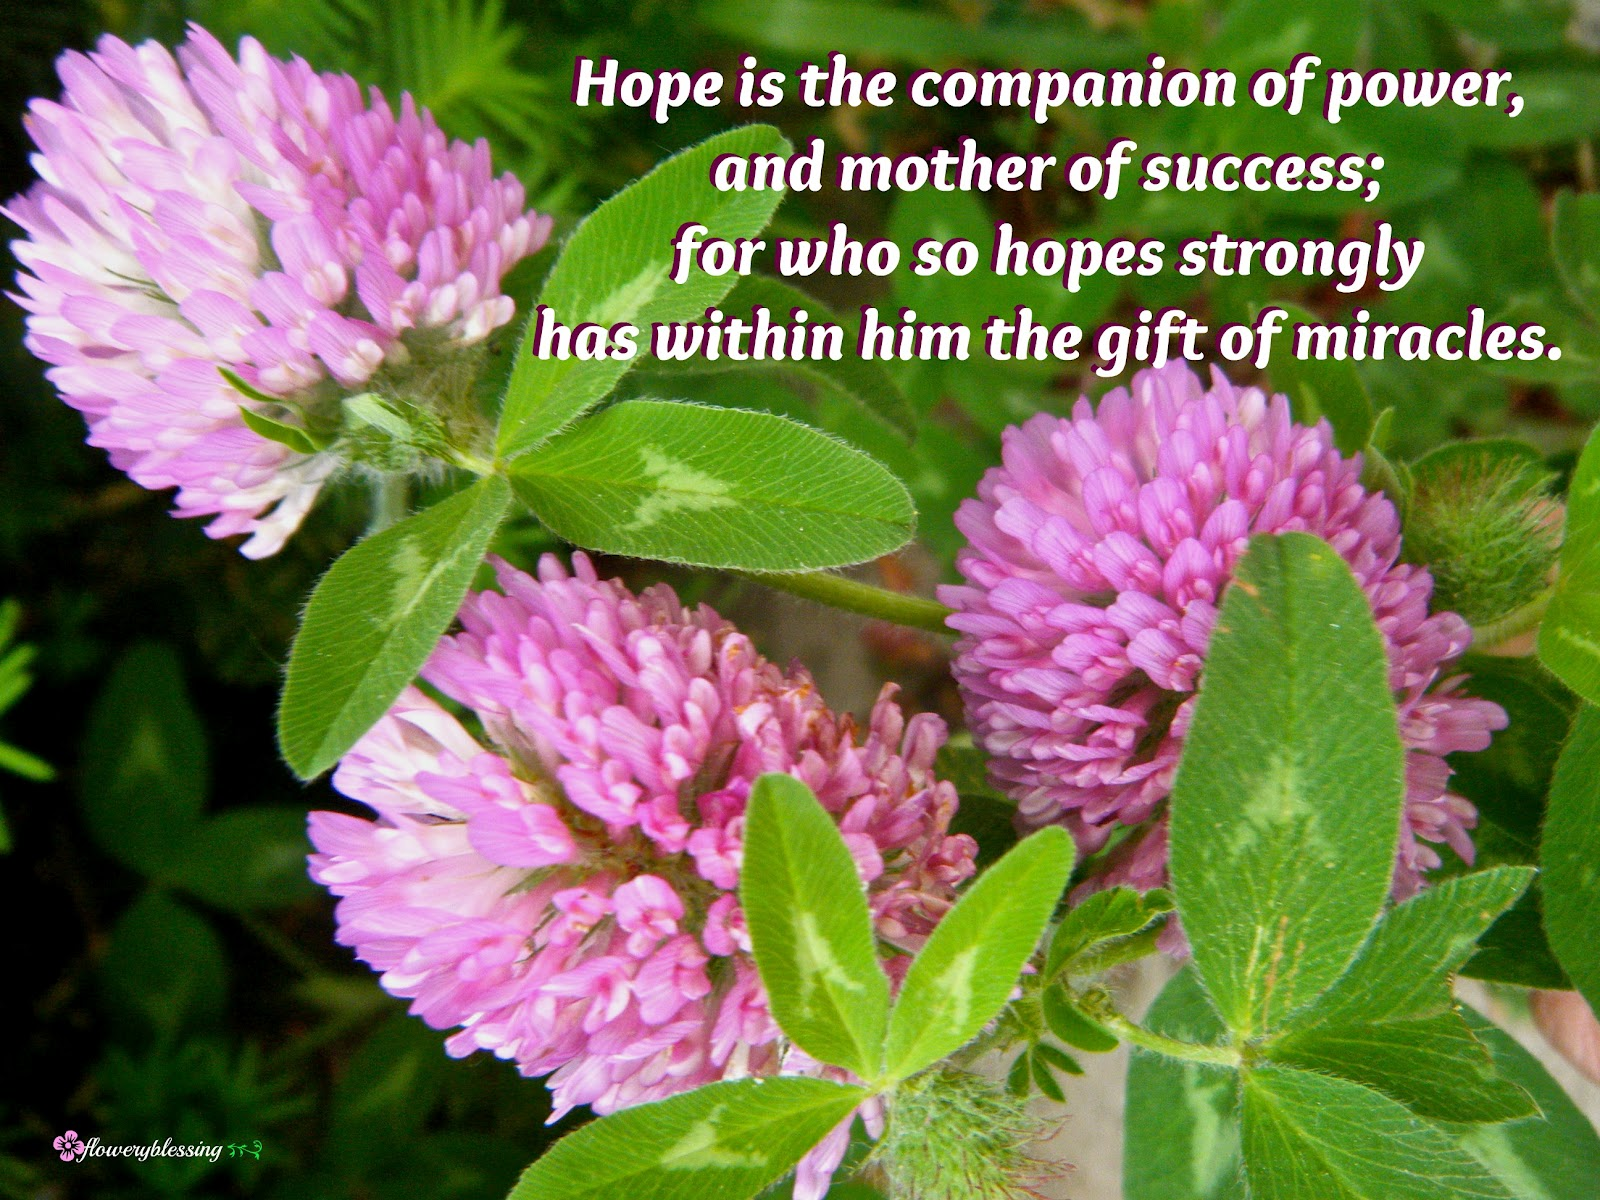 Flowery Blessing Hope is the panion of power and mother of success for